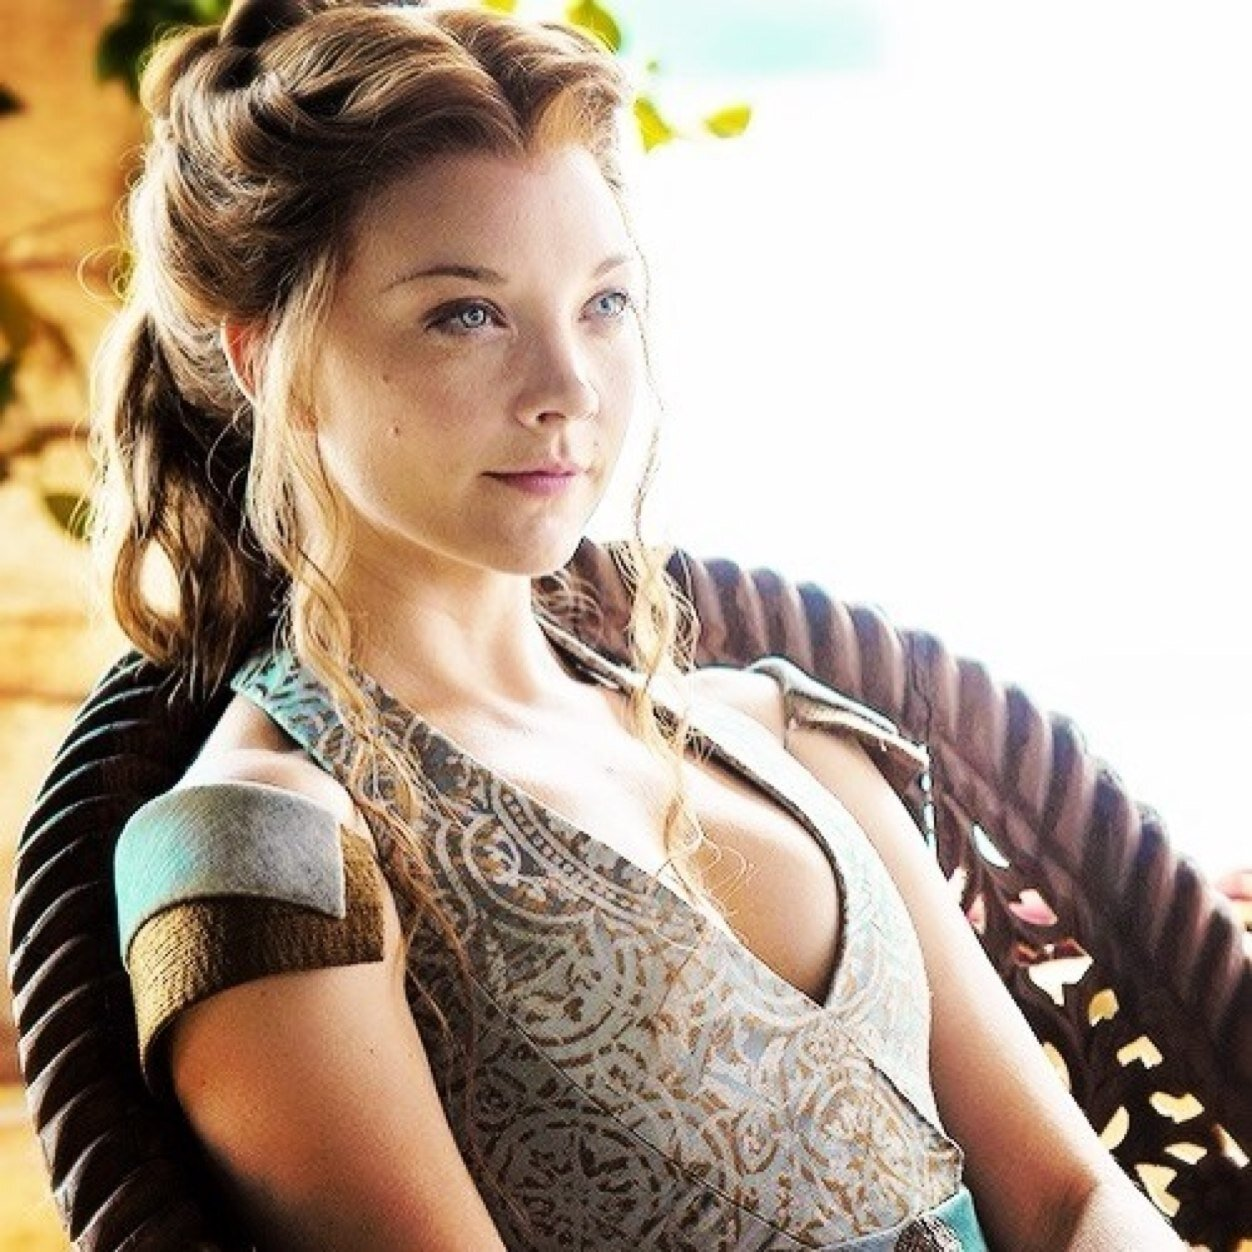 natalie-dormer-rainha-margaery-game-of-thrones-inerds